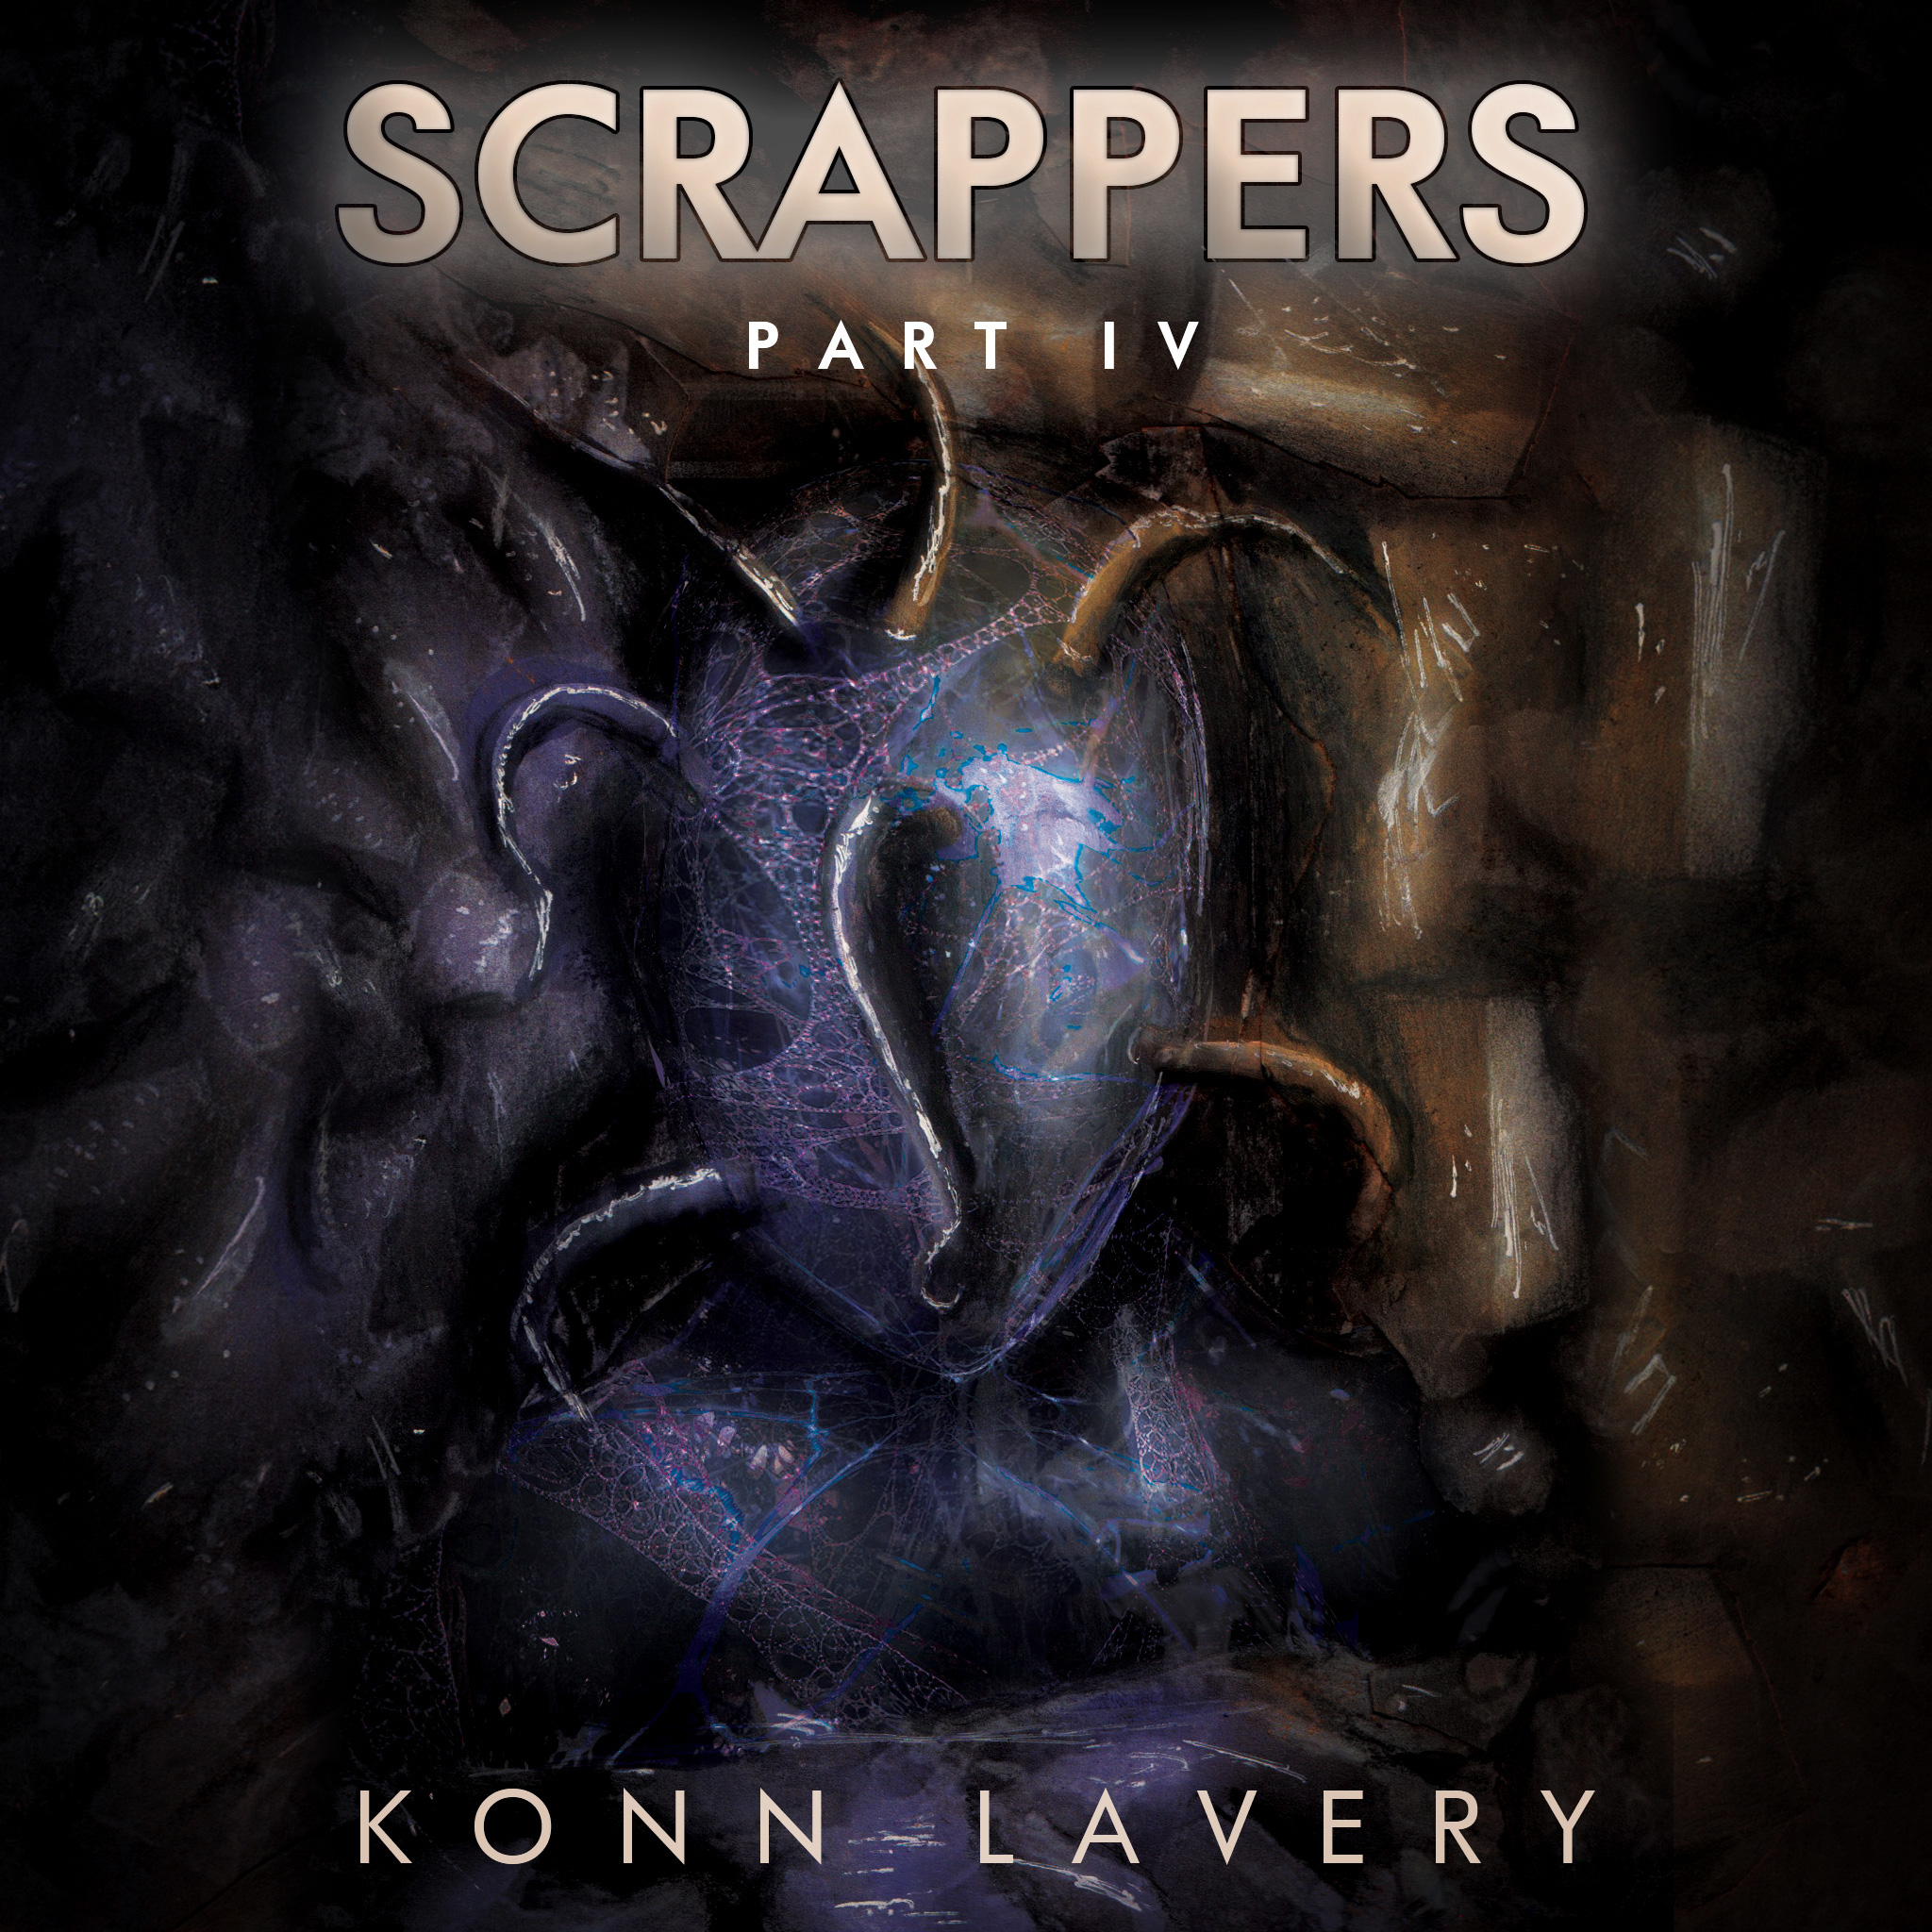 Scrappers Part IV